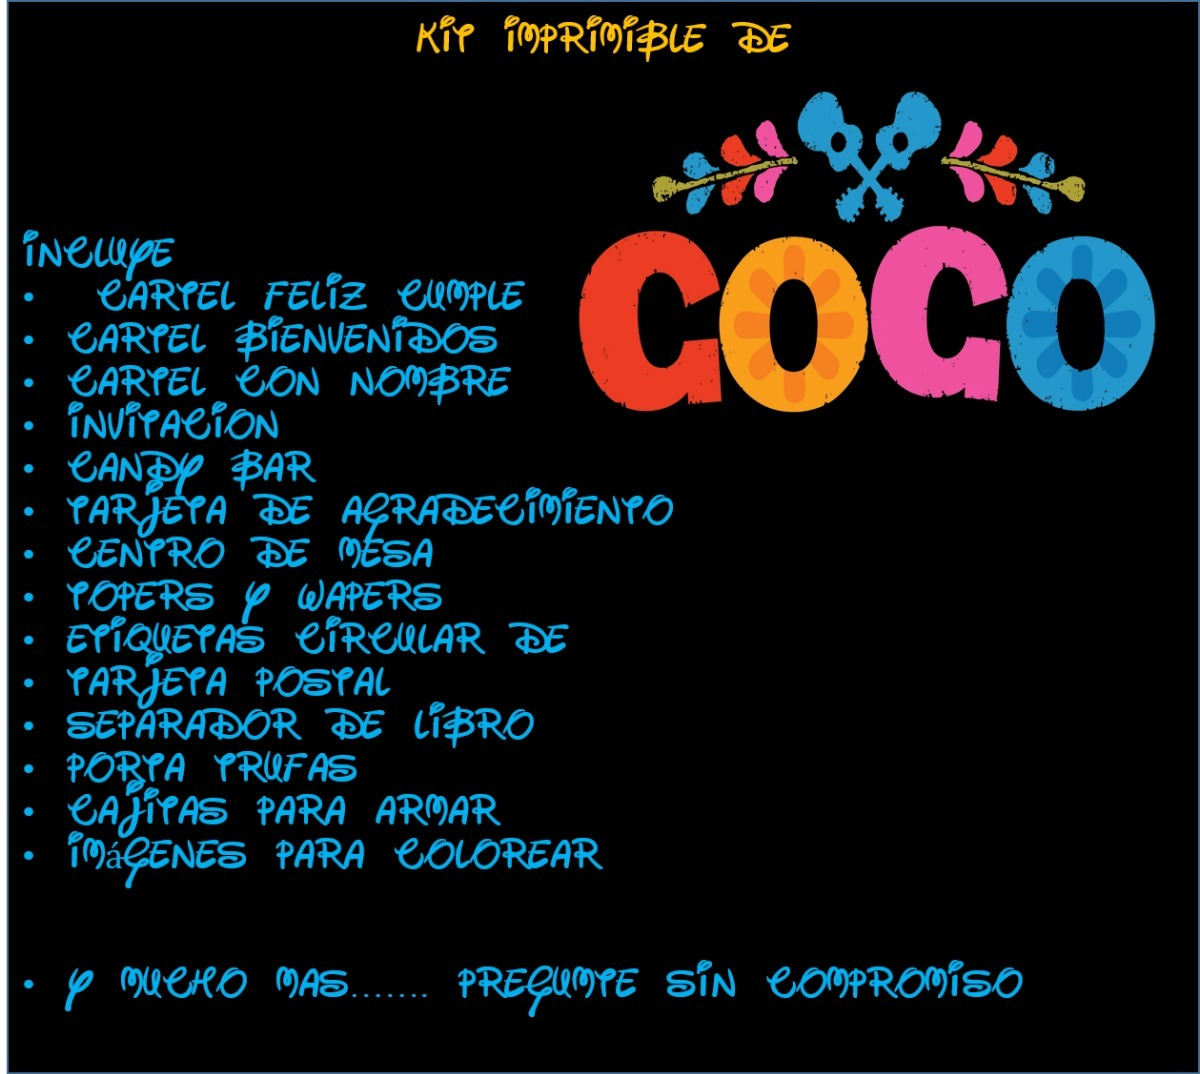 Kit Imprimible De Coco Disney - $ 5.000 en Mercado Libre